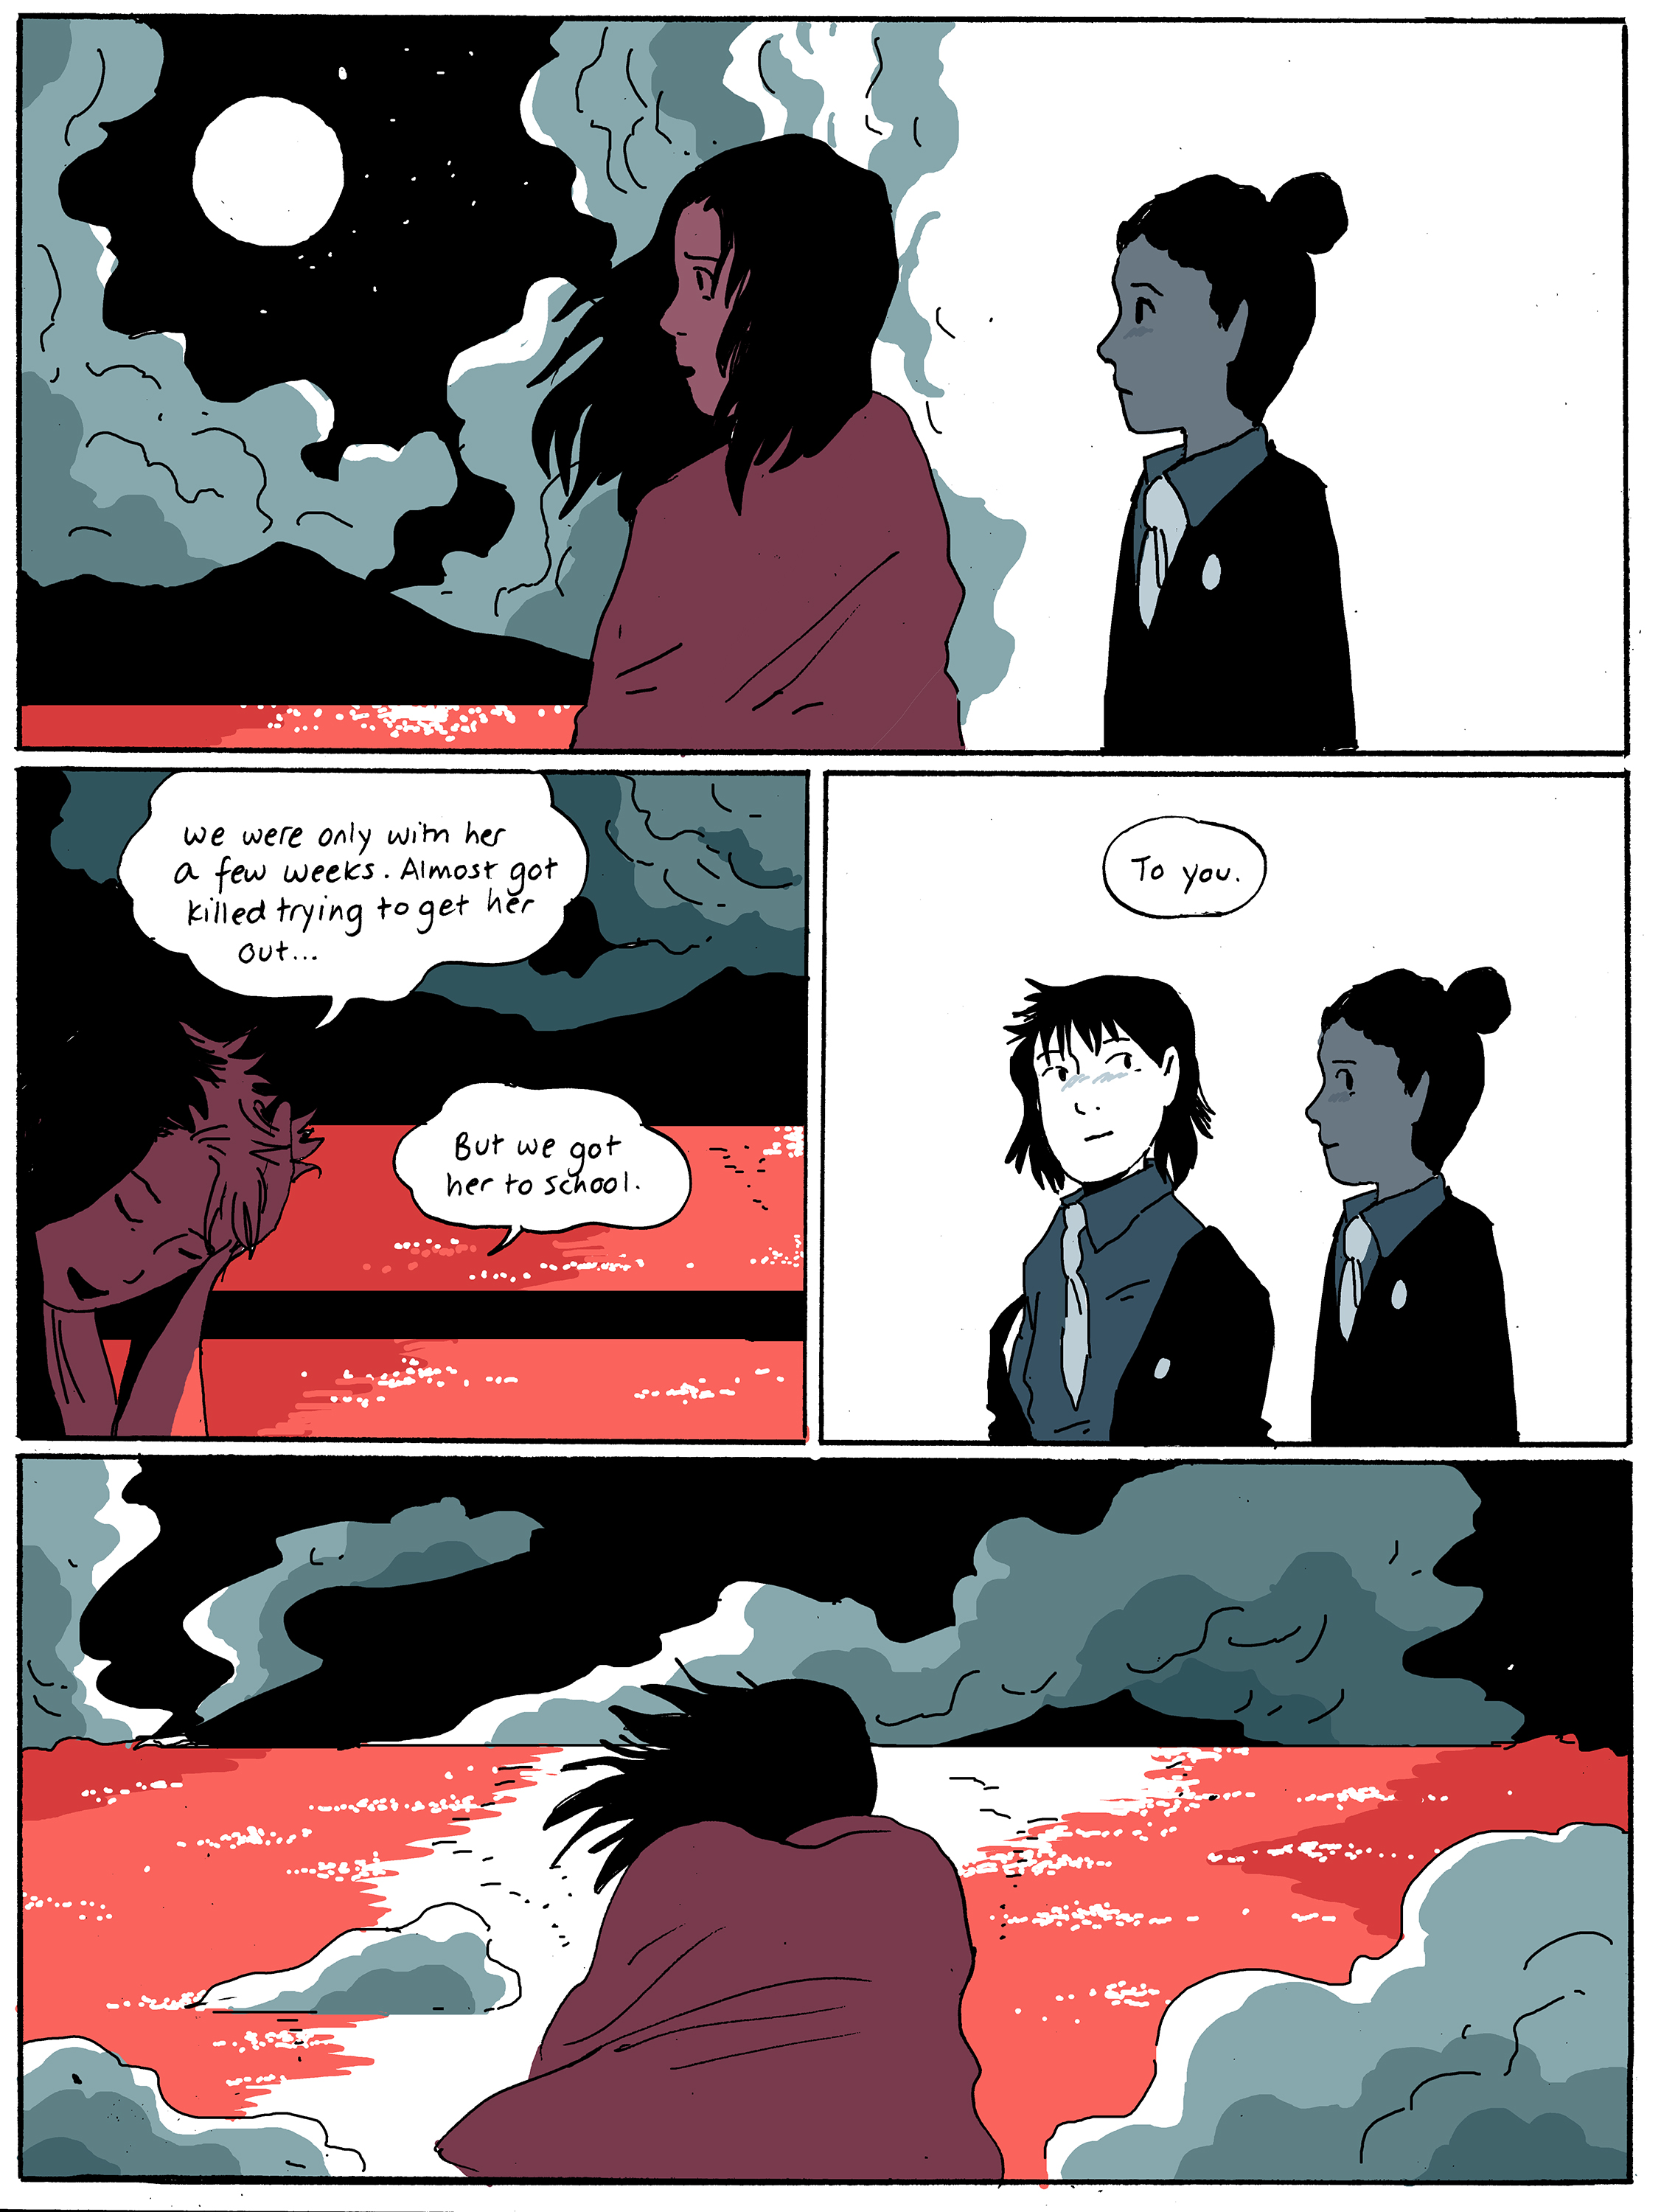 chapter14_page23.jpg